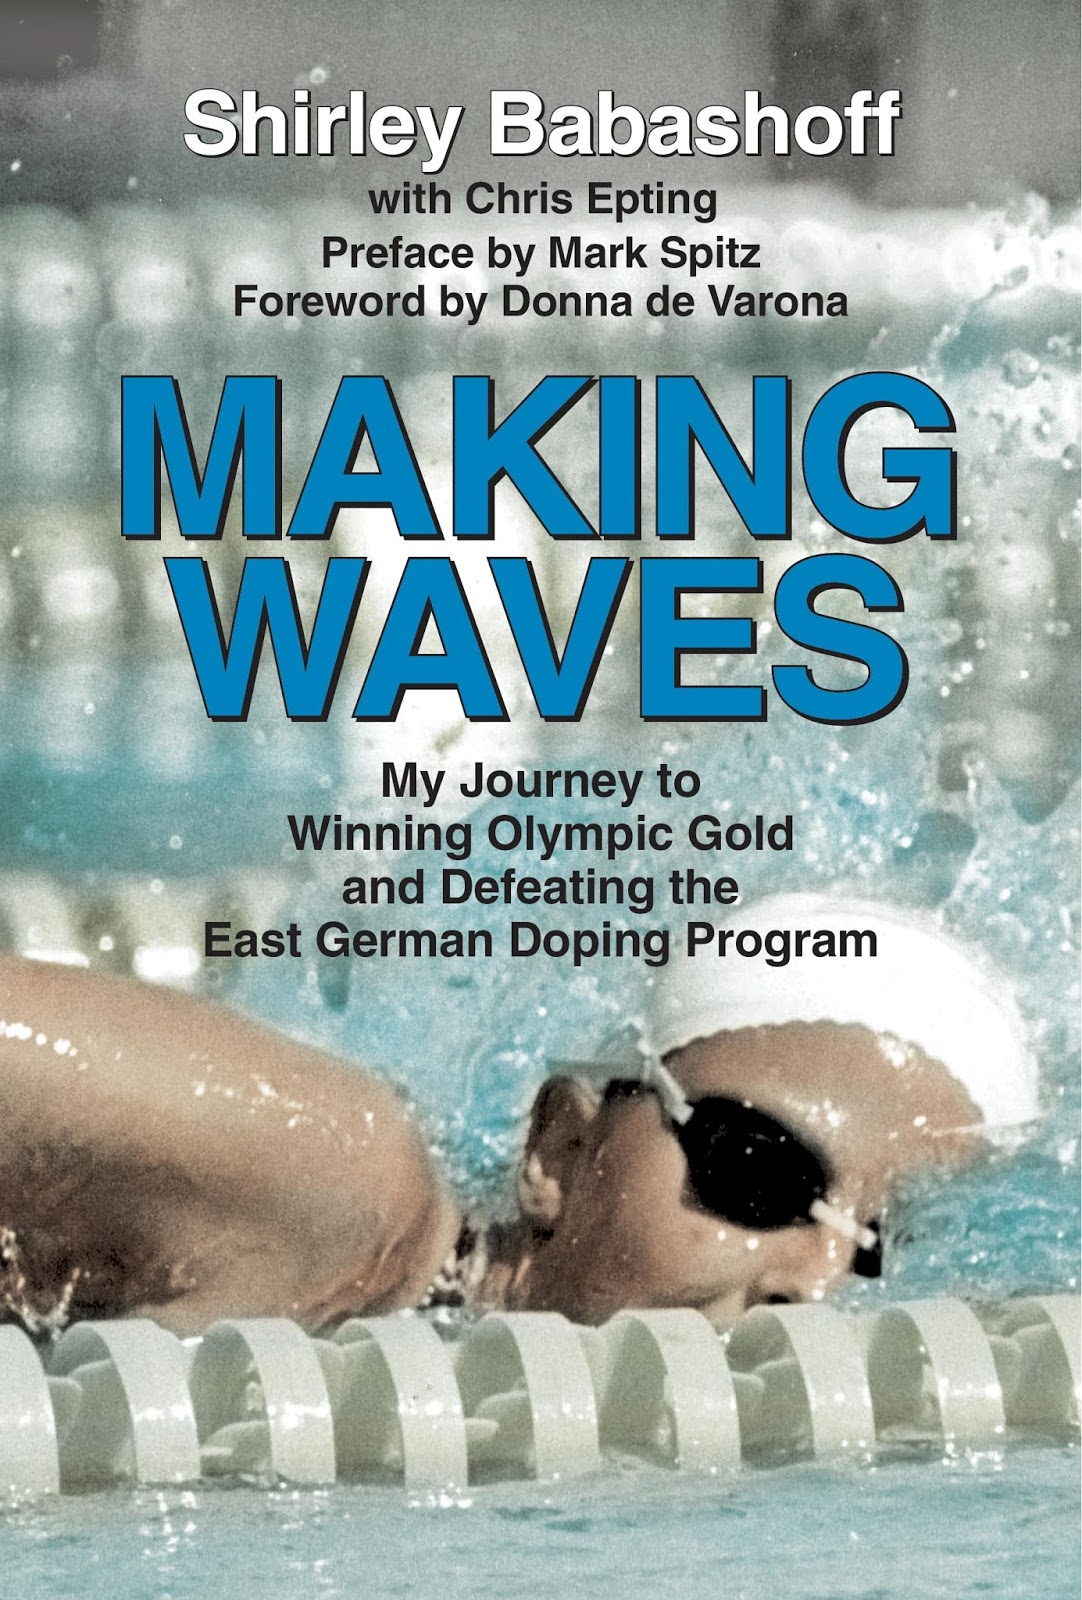 Olympic Rings And Other Things Olympic Swimming Champ Shirley Babashoff Making Waves With New